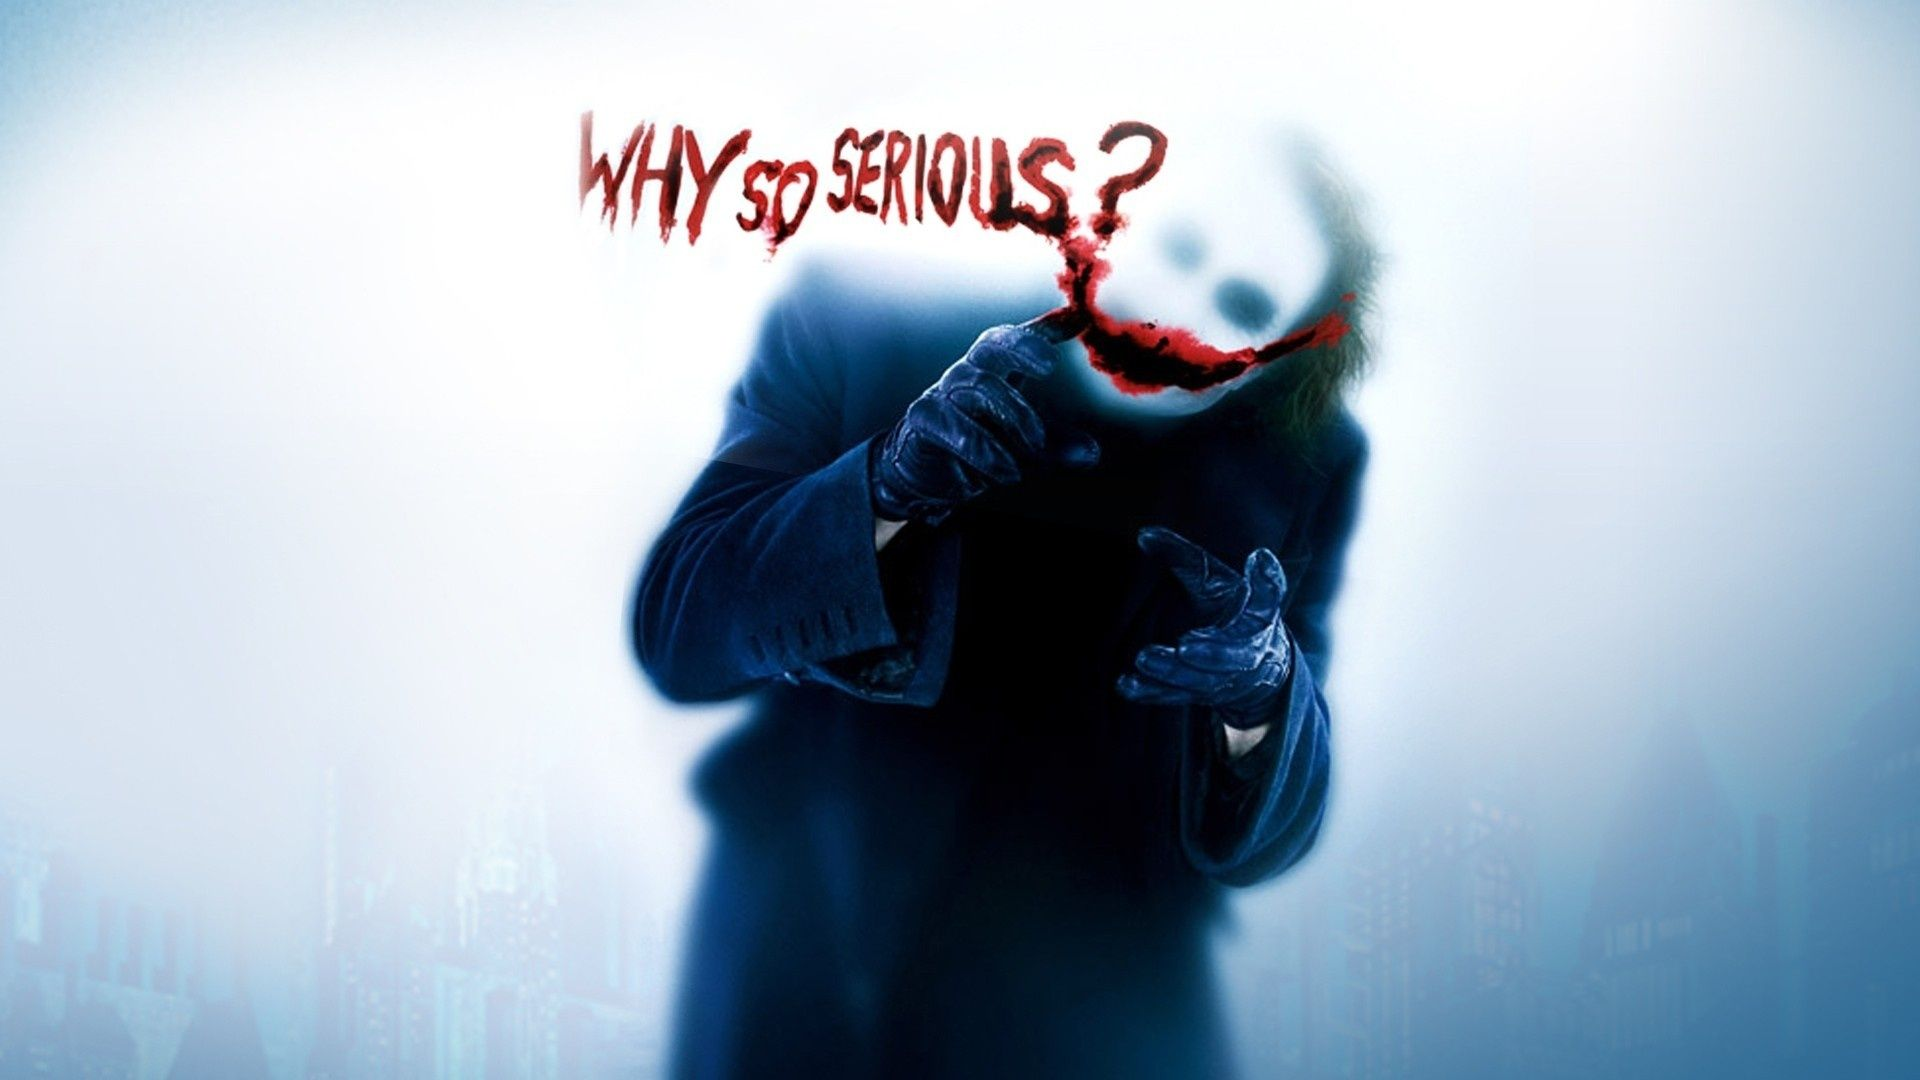 Arg Why So Serious Lors De La Sortie Du Film Batman The Dark Knight El Guason Peliculas Completas Situaciones Dificiles